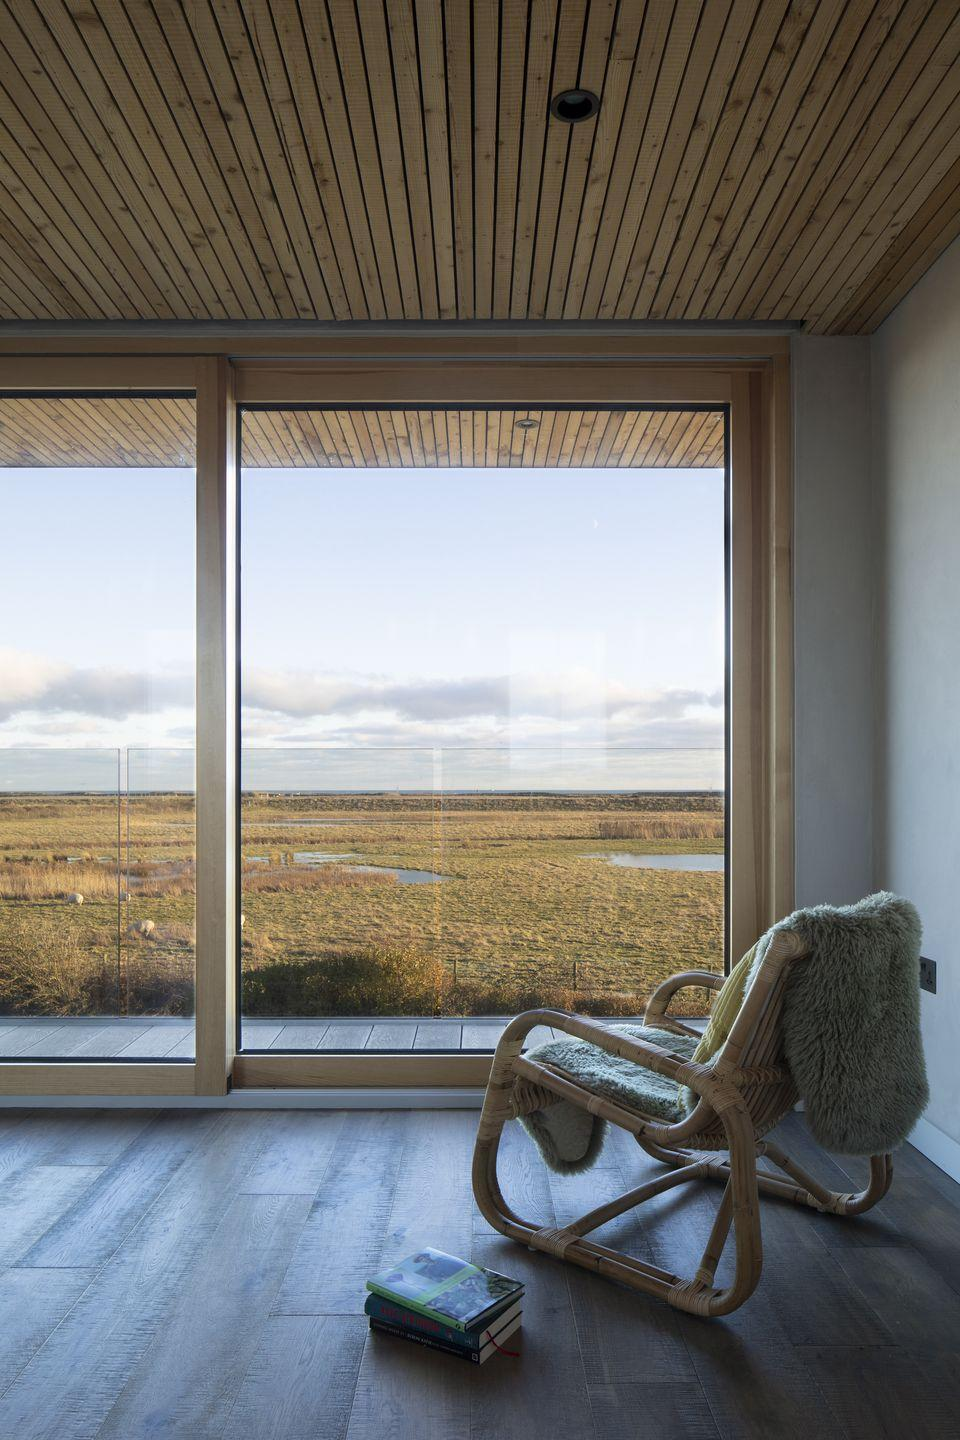 """<p>It's telling that Derek Rankin and Rob Pollard named their studio after the fishing boat code for the area where they're based. The duo have become experts in designing for coastal settings, with highlights including a Camber Sands beach house and a larch-clad home overlooking Rye Harbour Nature Reserve.</p><p><strong>They say </strong>'Whether it's the patina created on metal surfaces or the natural silvering process of timber, our aim is to create architecture that complements its environment and is enhanced by the weathering process.' <a href=""""https://www.rxarchitects.com/"""" rel=""""nofollow noopener"""" target=""""_blank"""" data-ylk=""""slk:rxarchitects.com"""" class=""""link rapid-noclick-resp"""">rxarchitects.com </a></p>"""